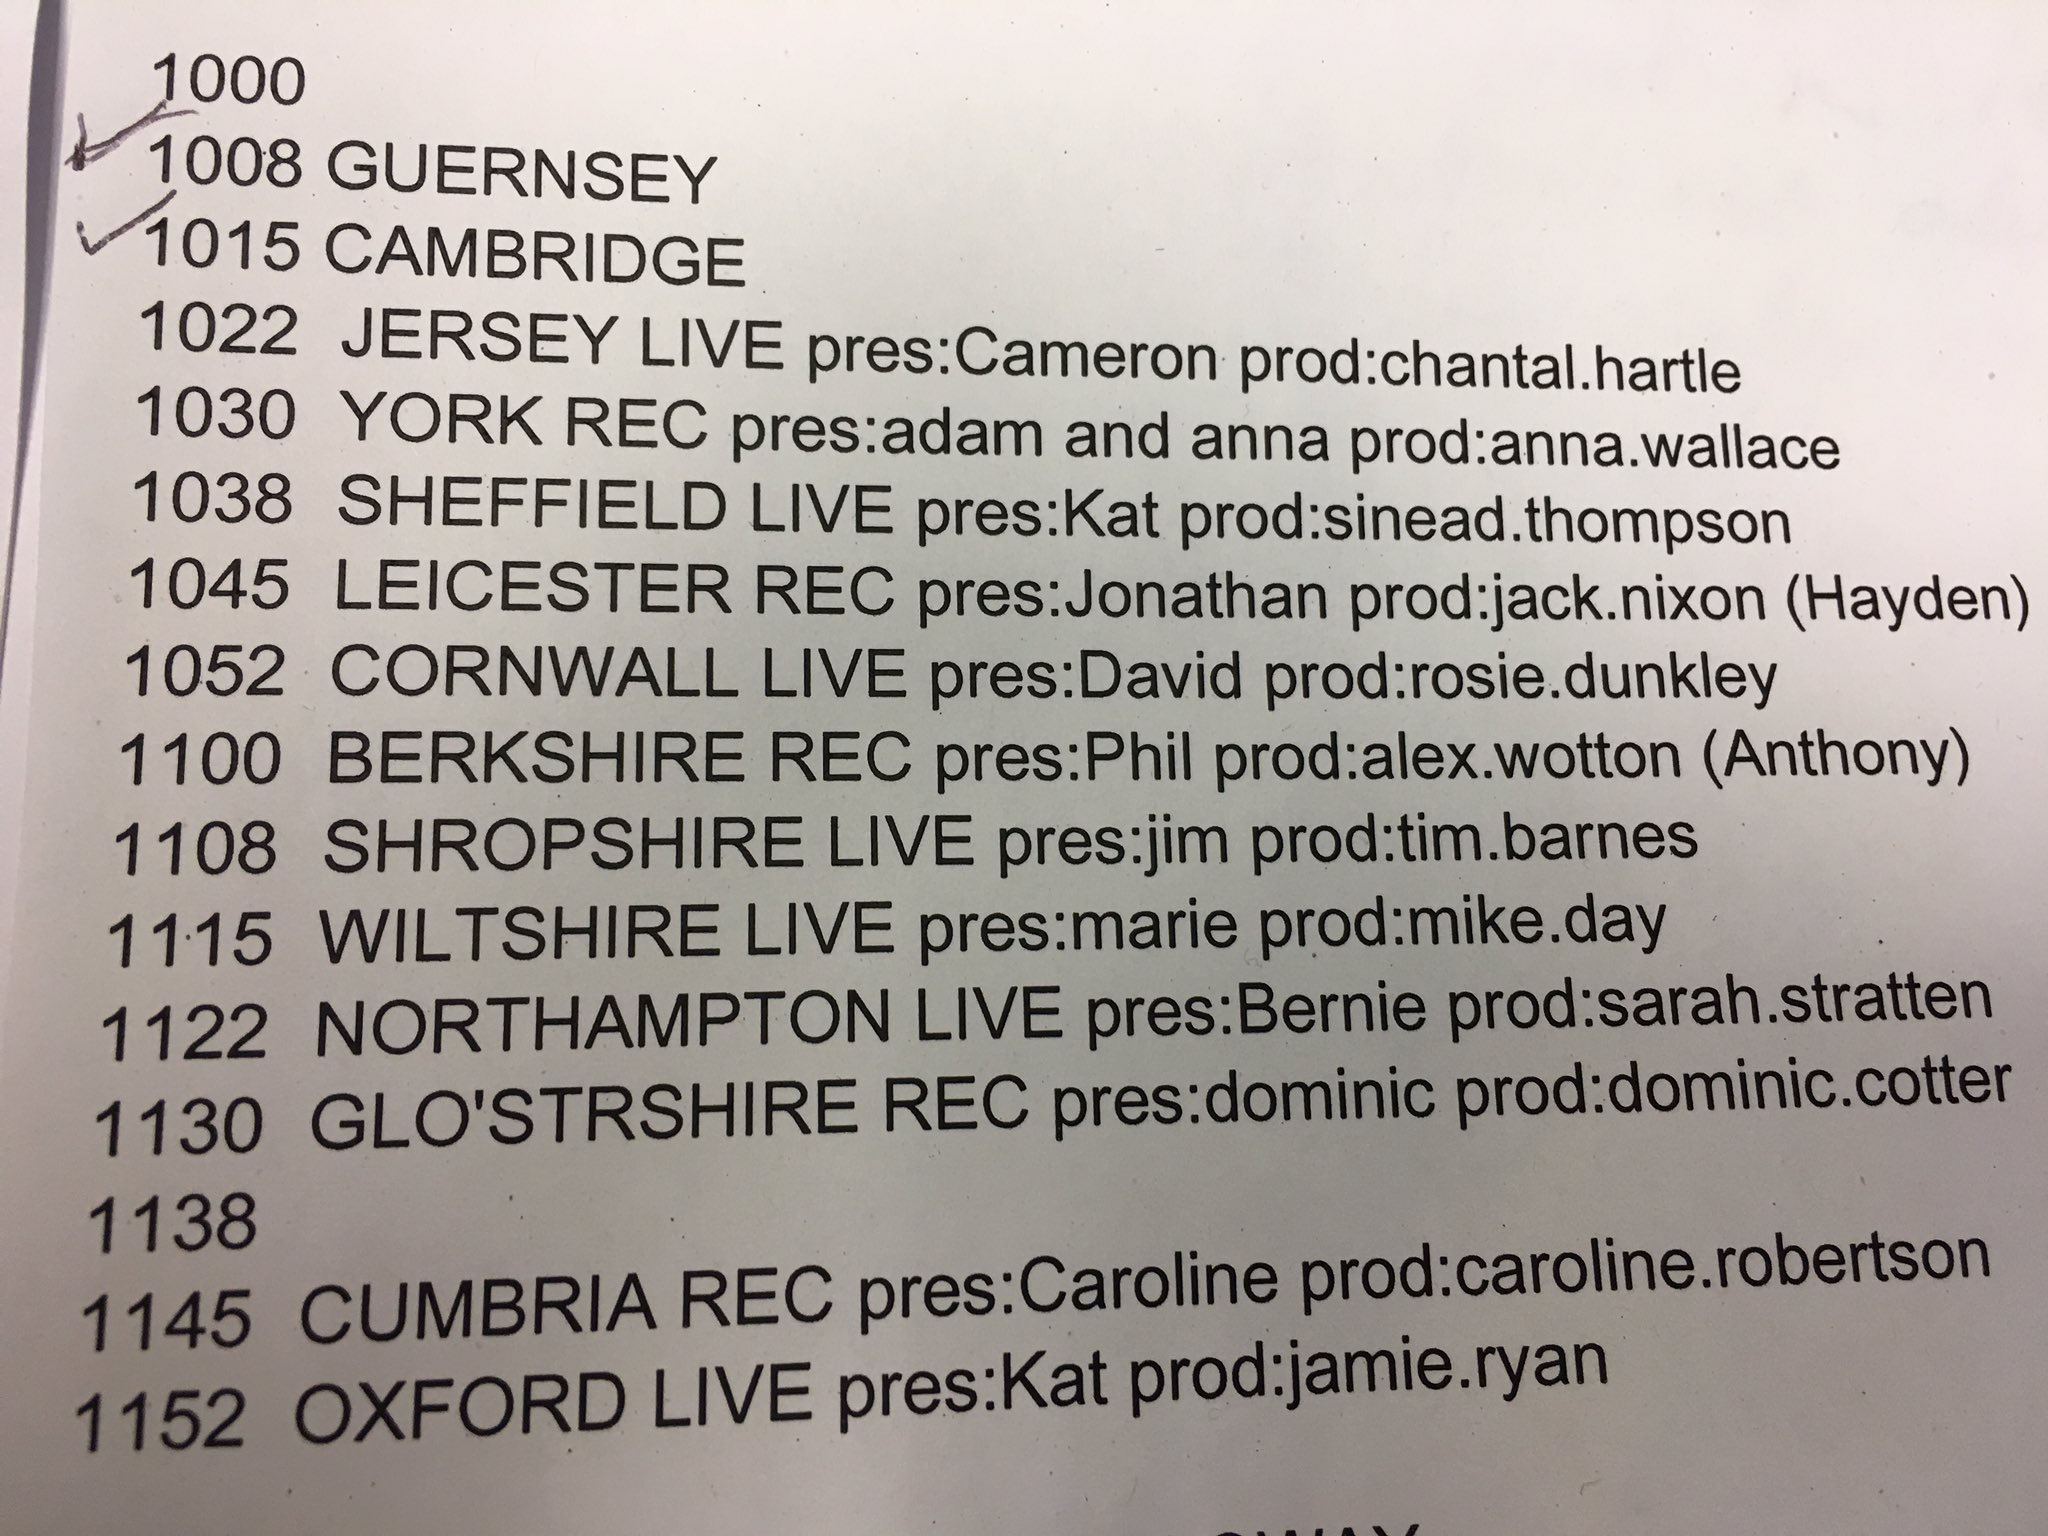 Listen out for me on your local bbc radio here's the list: https://t.co/Qk1XmYaKNe